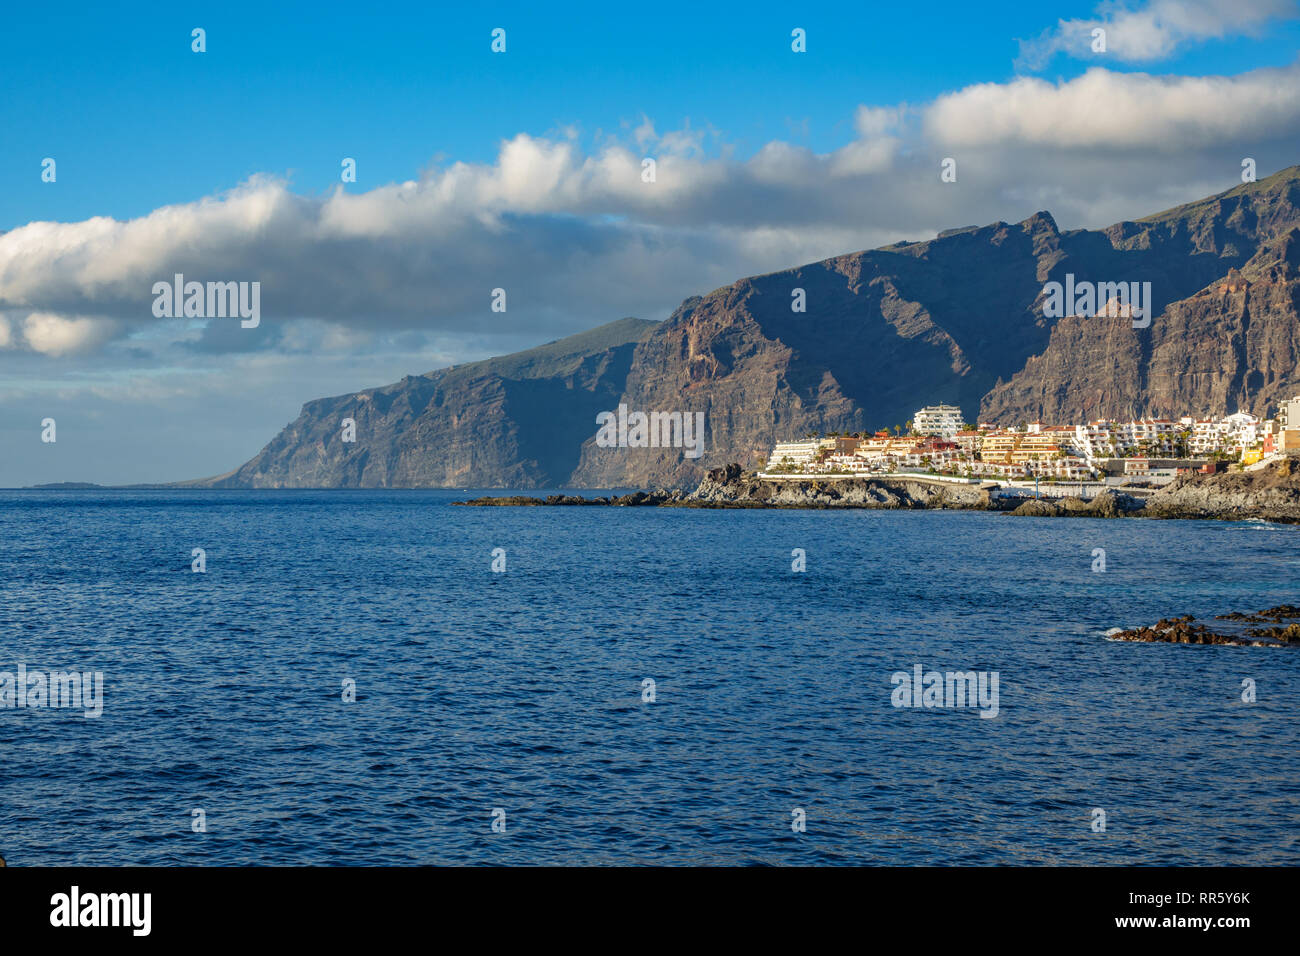 Los Gigantes cliffs and buildings in Tenerife - Stock Image